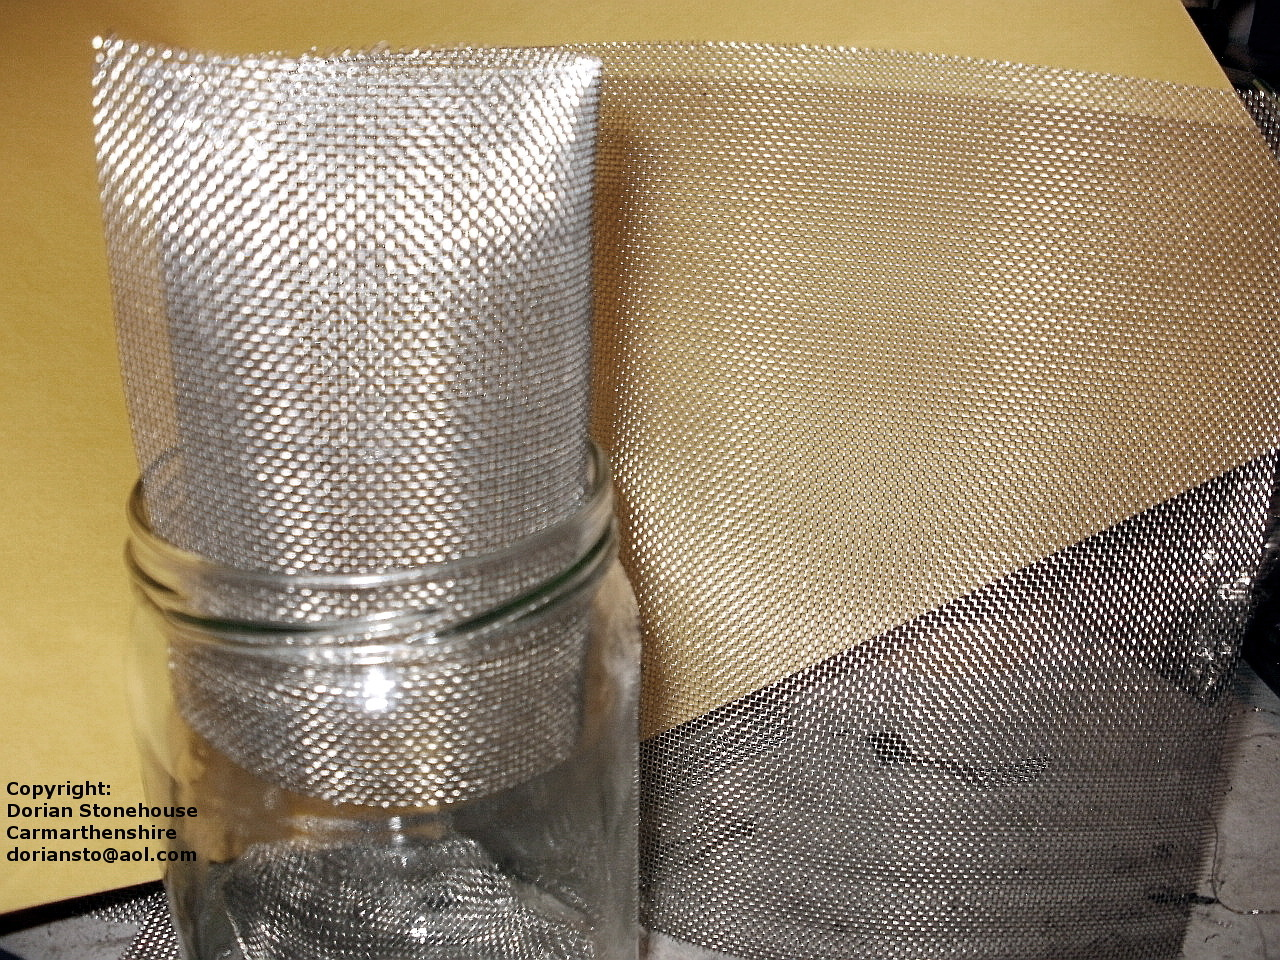 20 mesh is rolled into a jar for sizing up